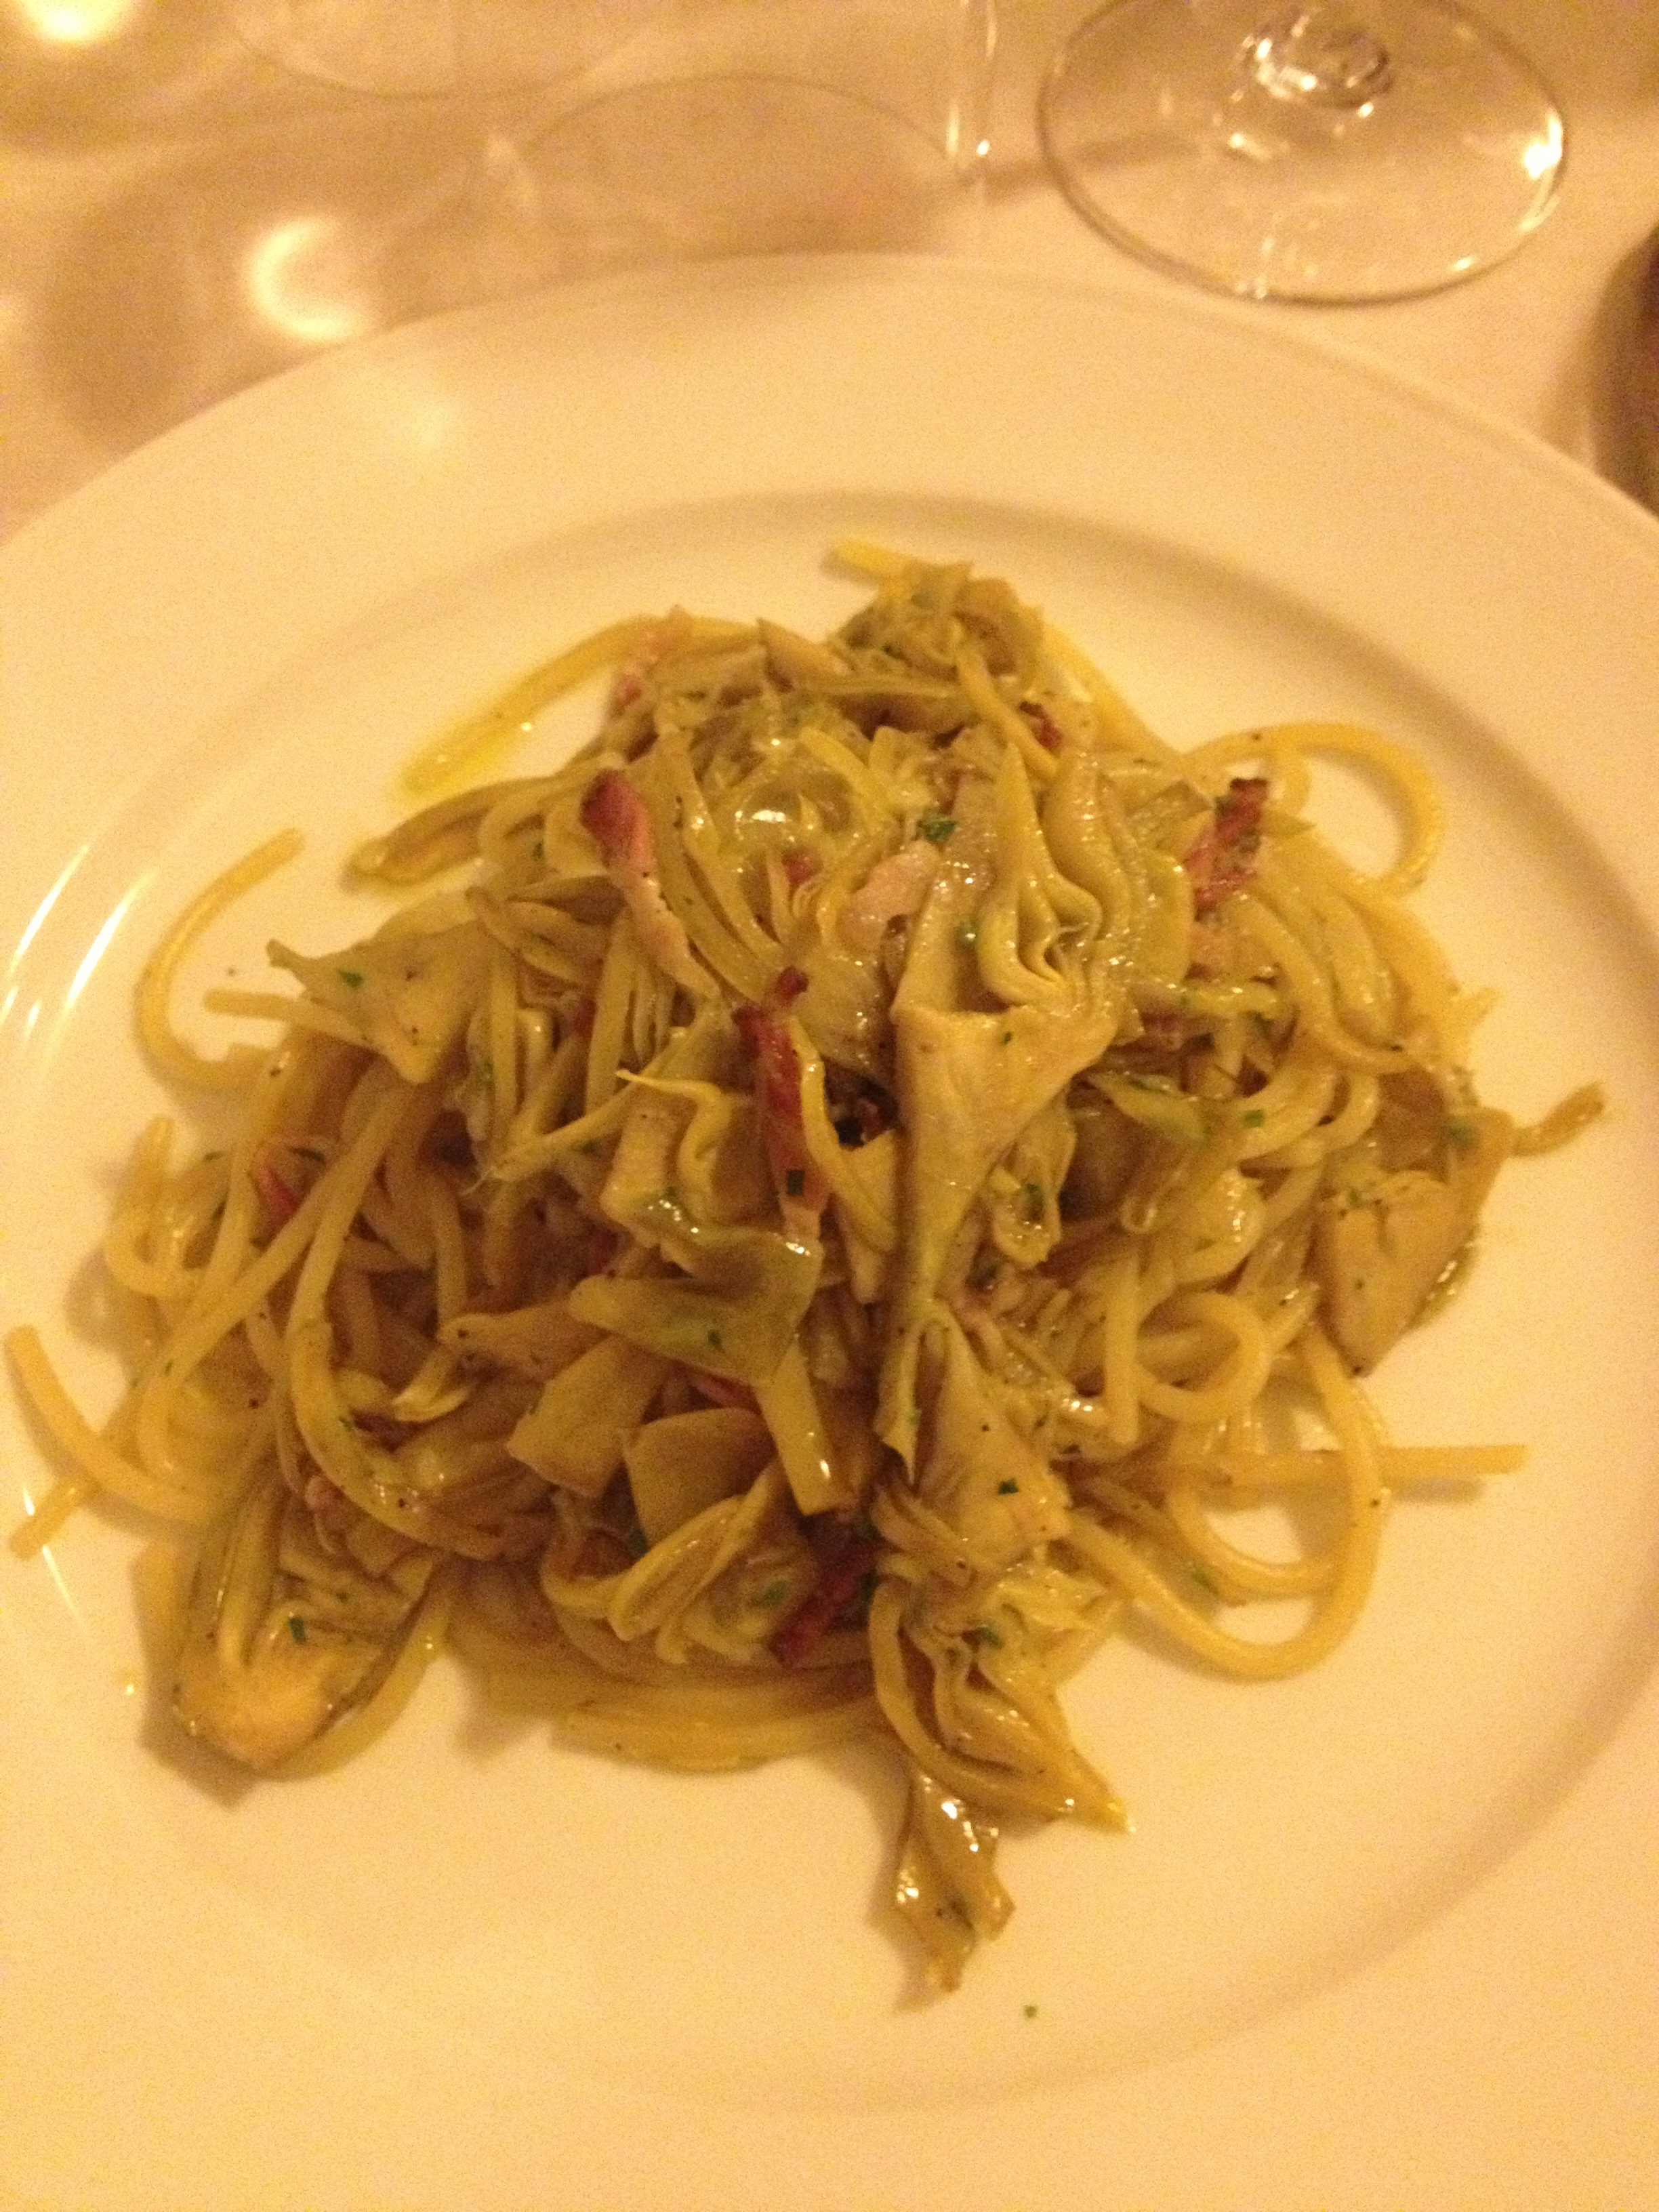 Spaghetti with Artichokes at Buca dell'Orafo